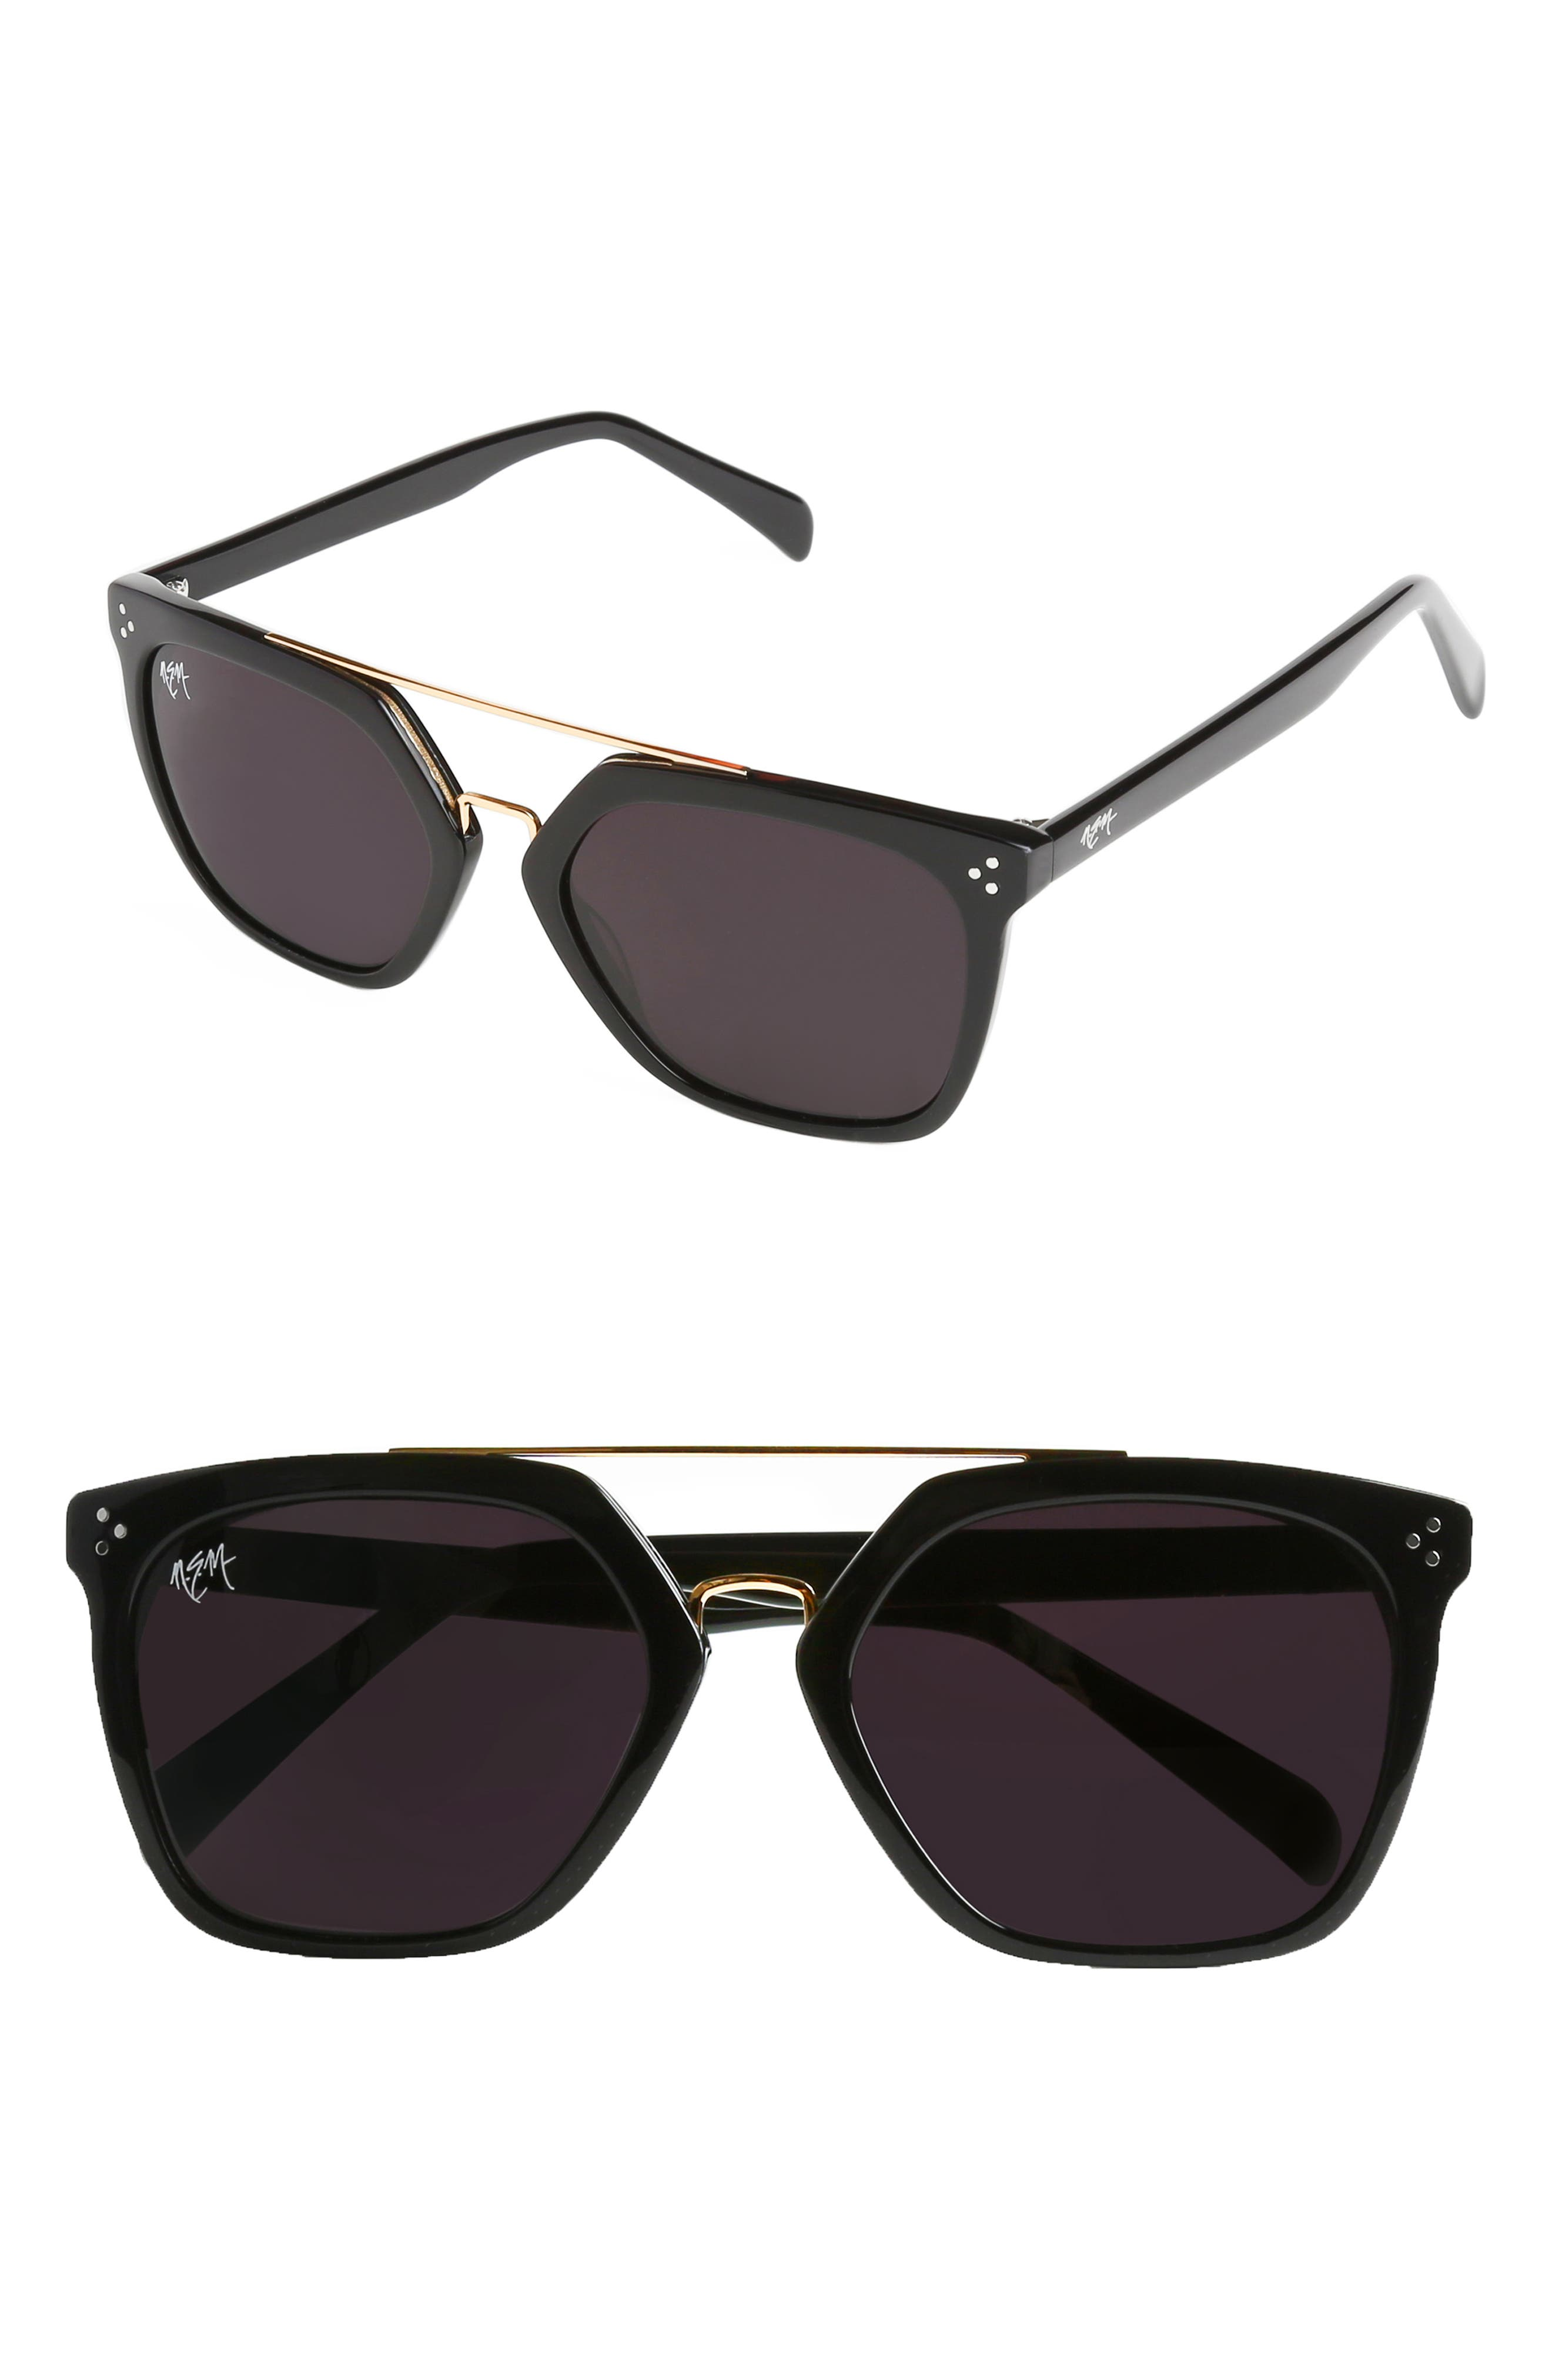 55mm Sunglasses,                         Main,                         color, GLOSSY BLACK